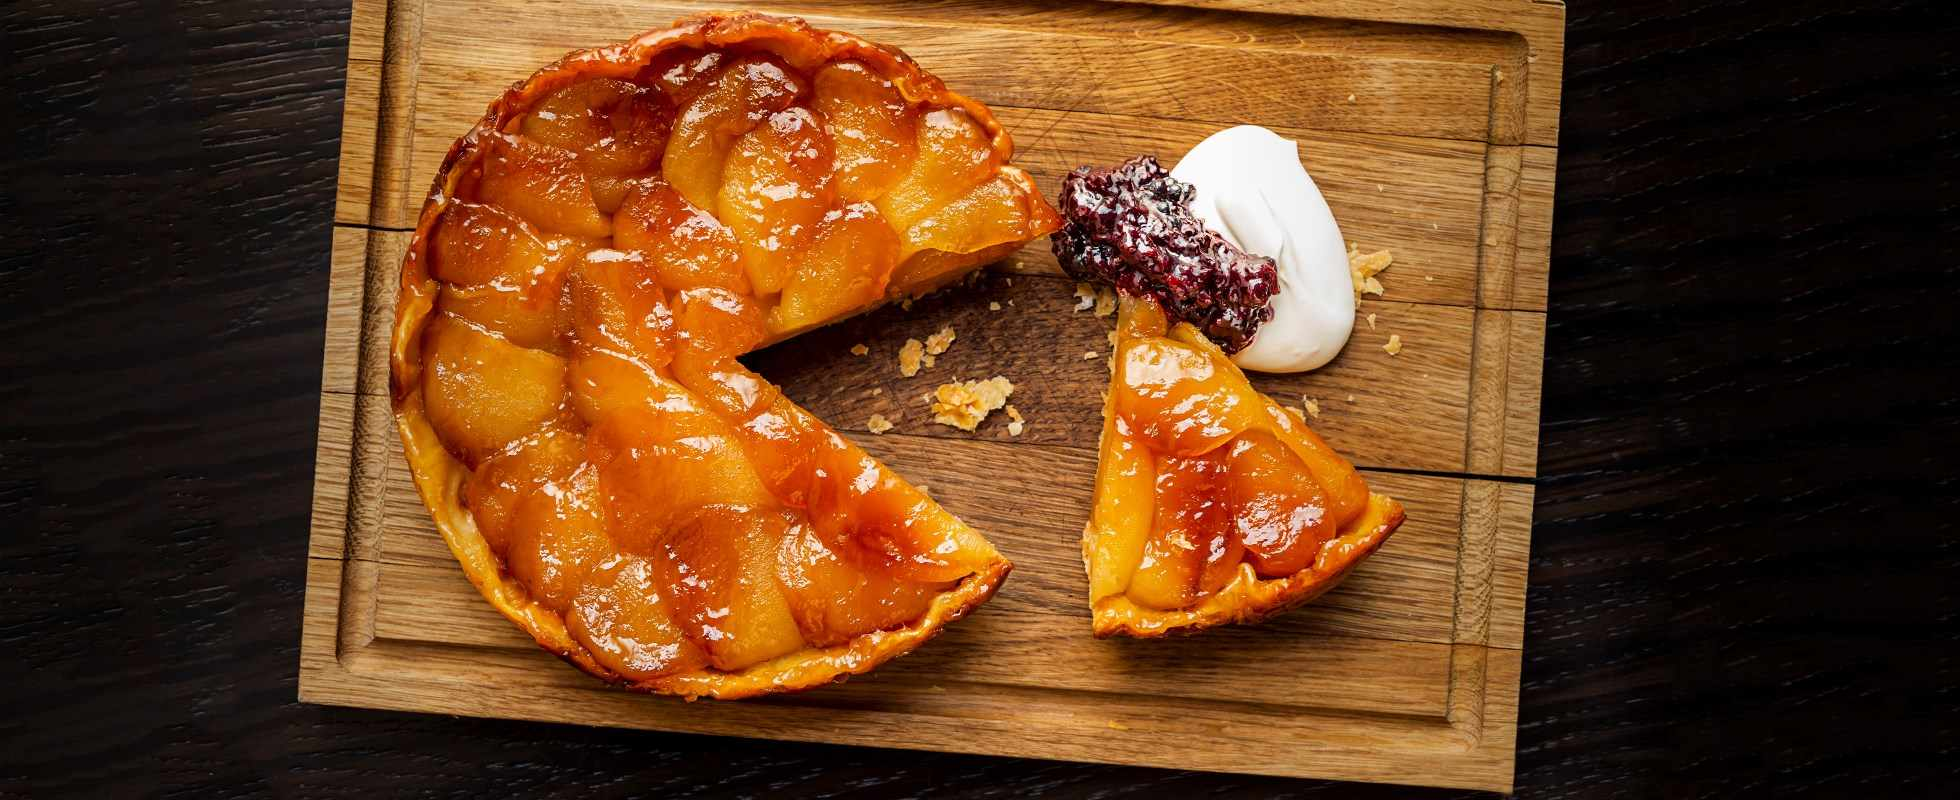 Apple tart with blackberry and soured cream